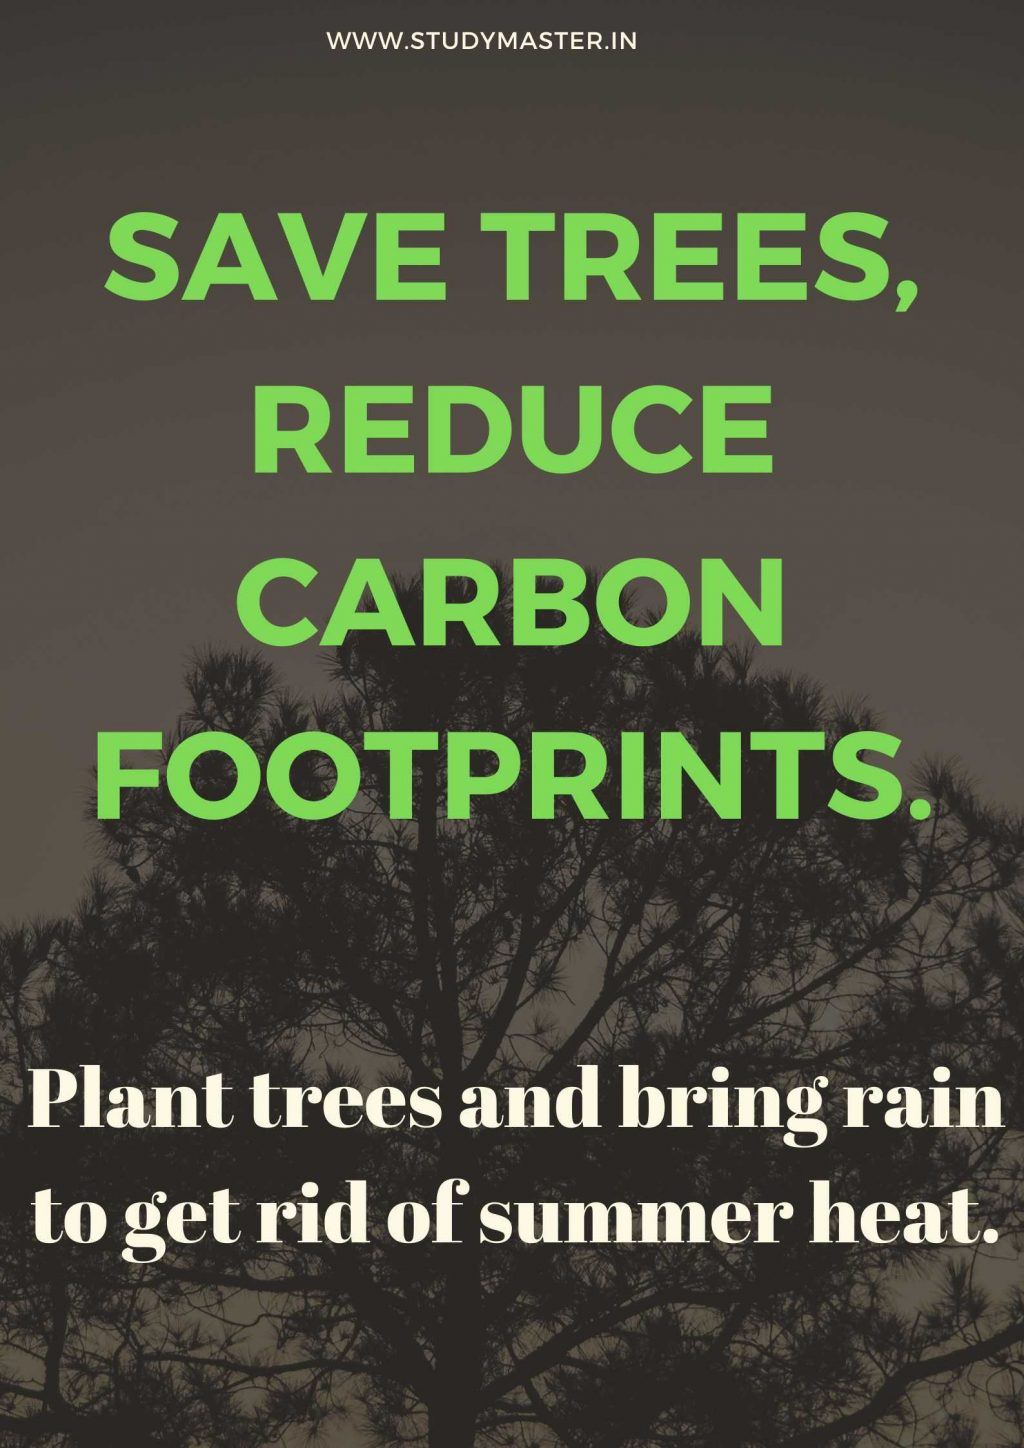 poster on save trees save life